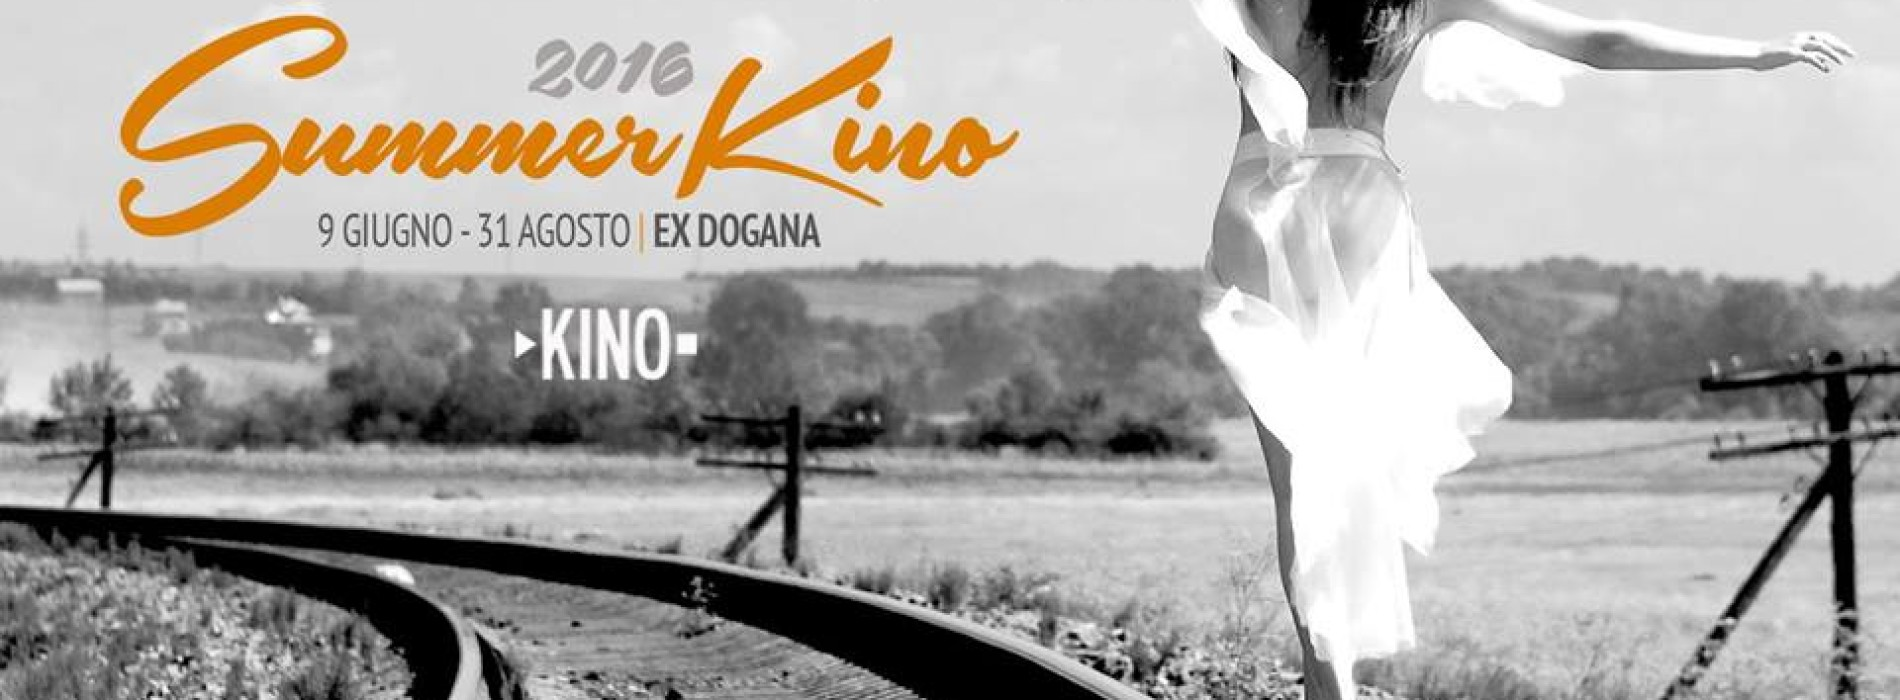 Kino all'ex Dogana Roma: cinema all'aperto e tanto food, da Pizza Trieste a Zum